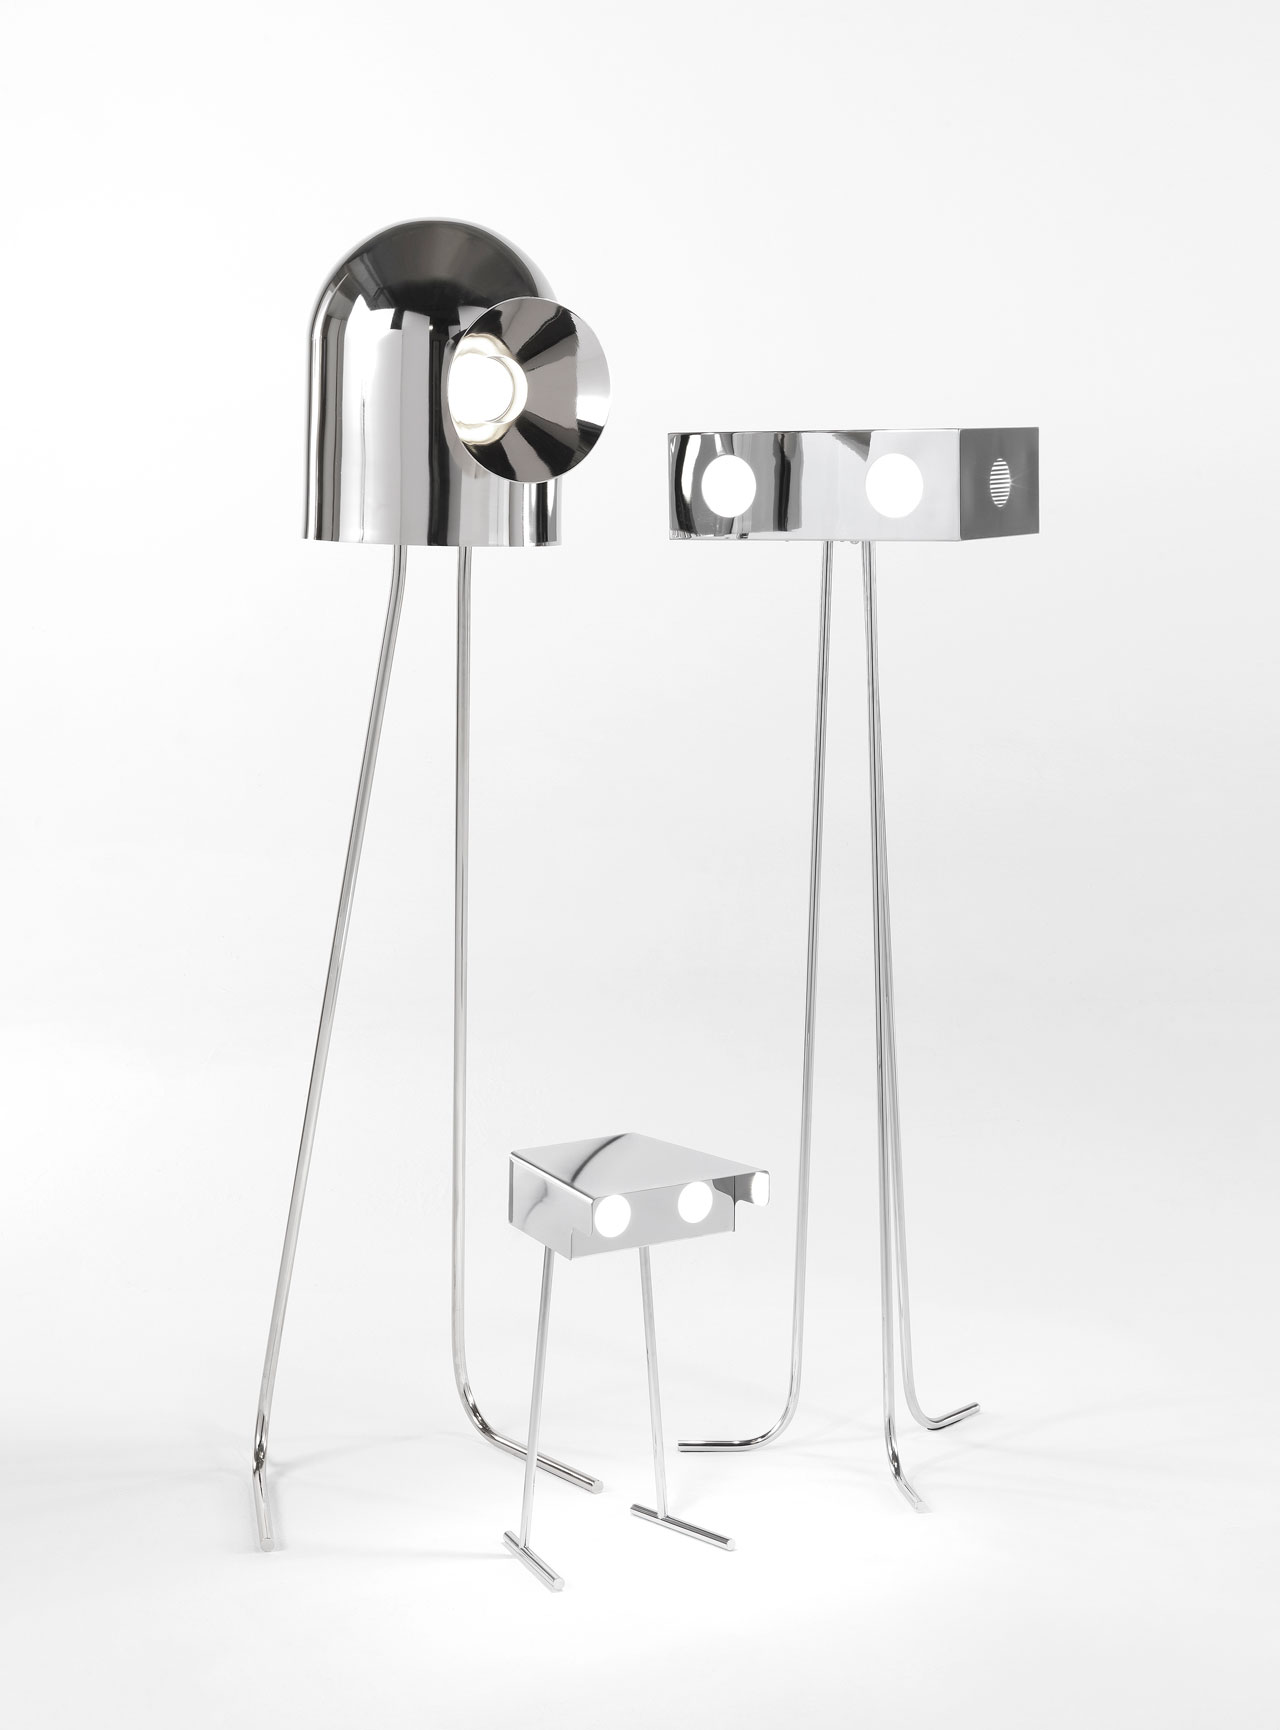 RONE & BETOO floor lamps by Richard Hutten for JCP Universe.Materials: metal structure in chrome finish and white perspex.Dimensions (H x W x D): 160cm x 40cm x 40cm & 50cm x 26cm x 24cm.Photo by Silvio Macchi © JCP Universe